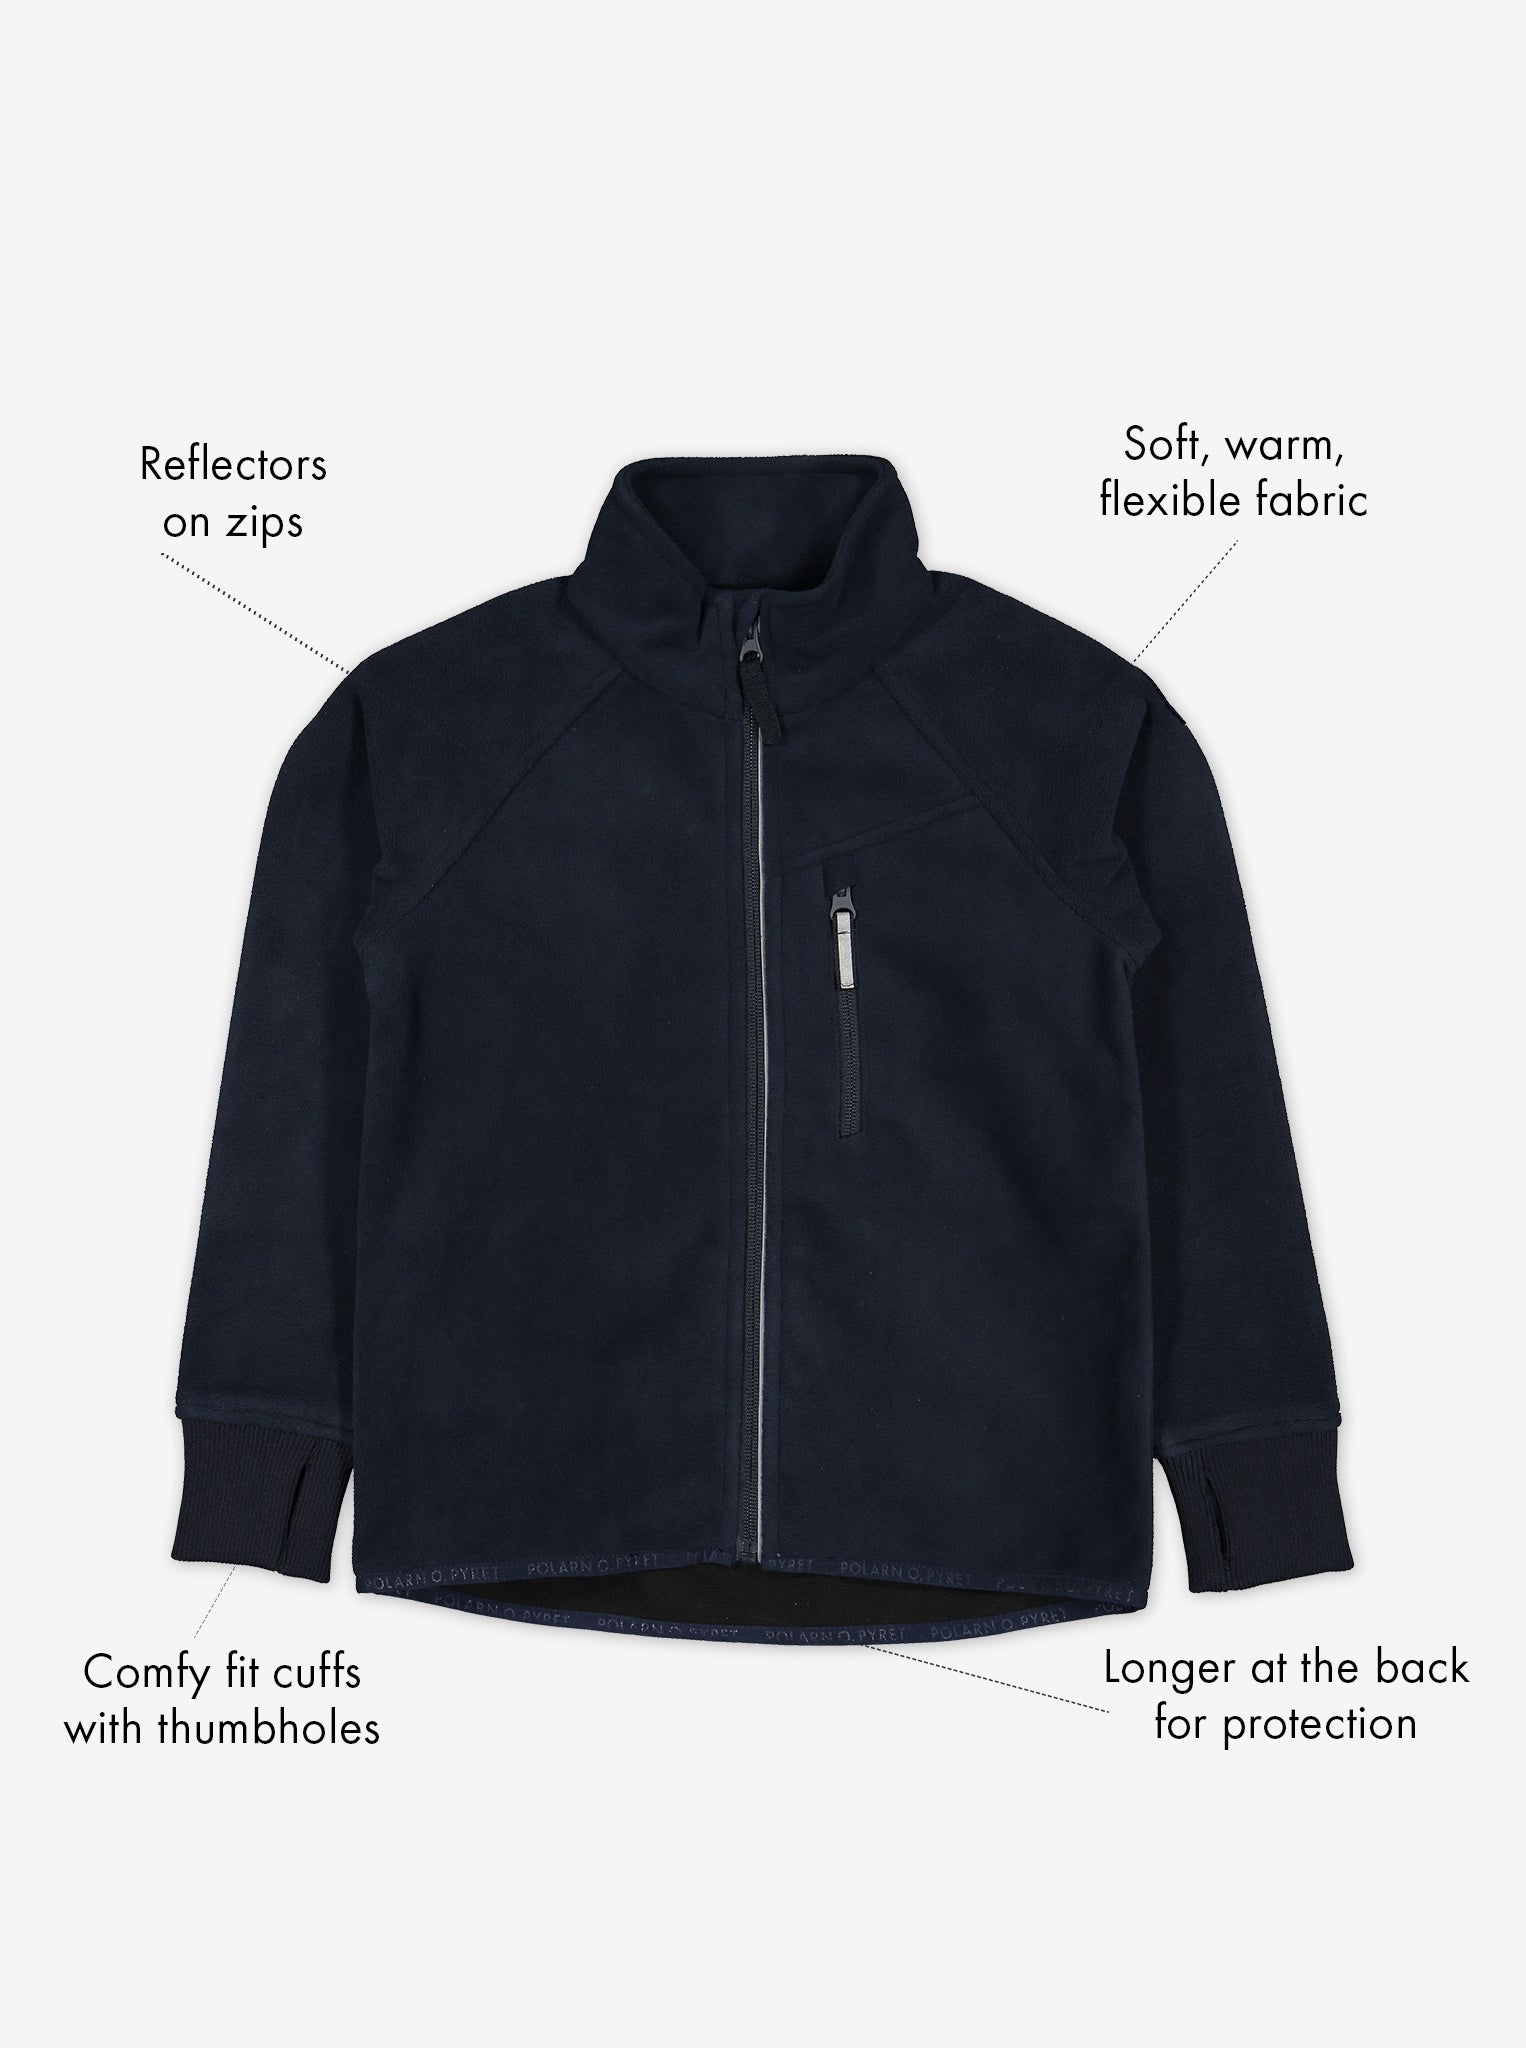 Navy, kids waterproof fleece jacket, with reflectors on zips and cuffs with thumbholes, made of soft and warm fabric.